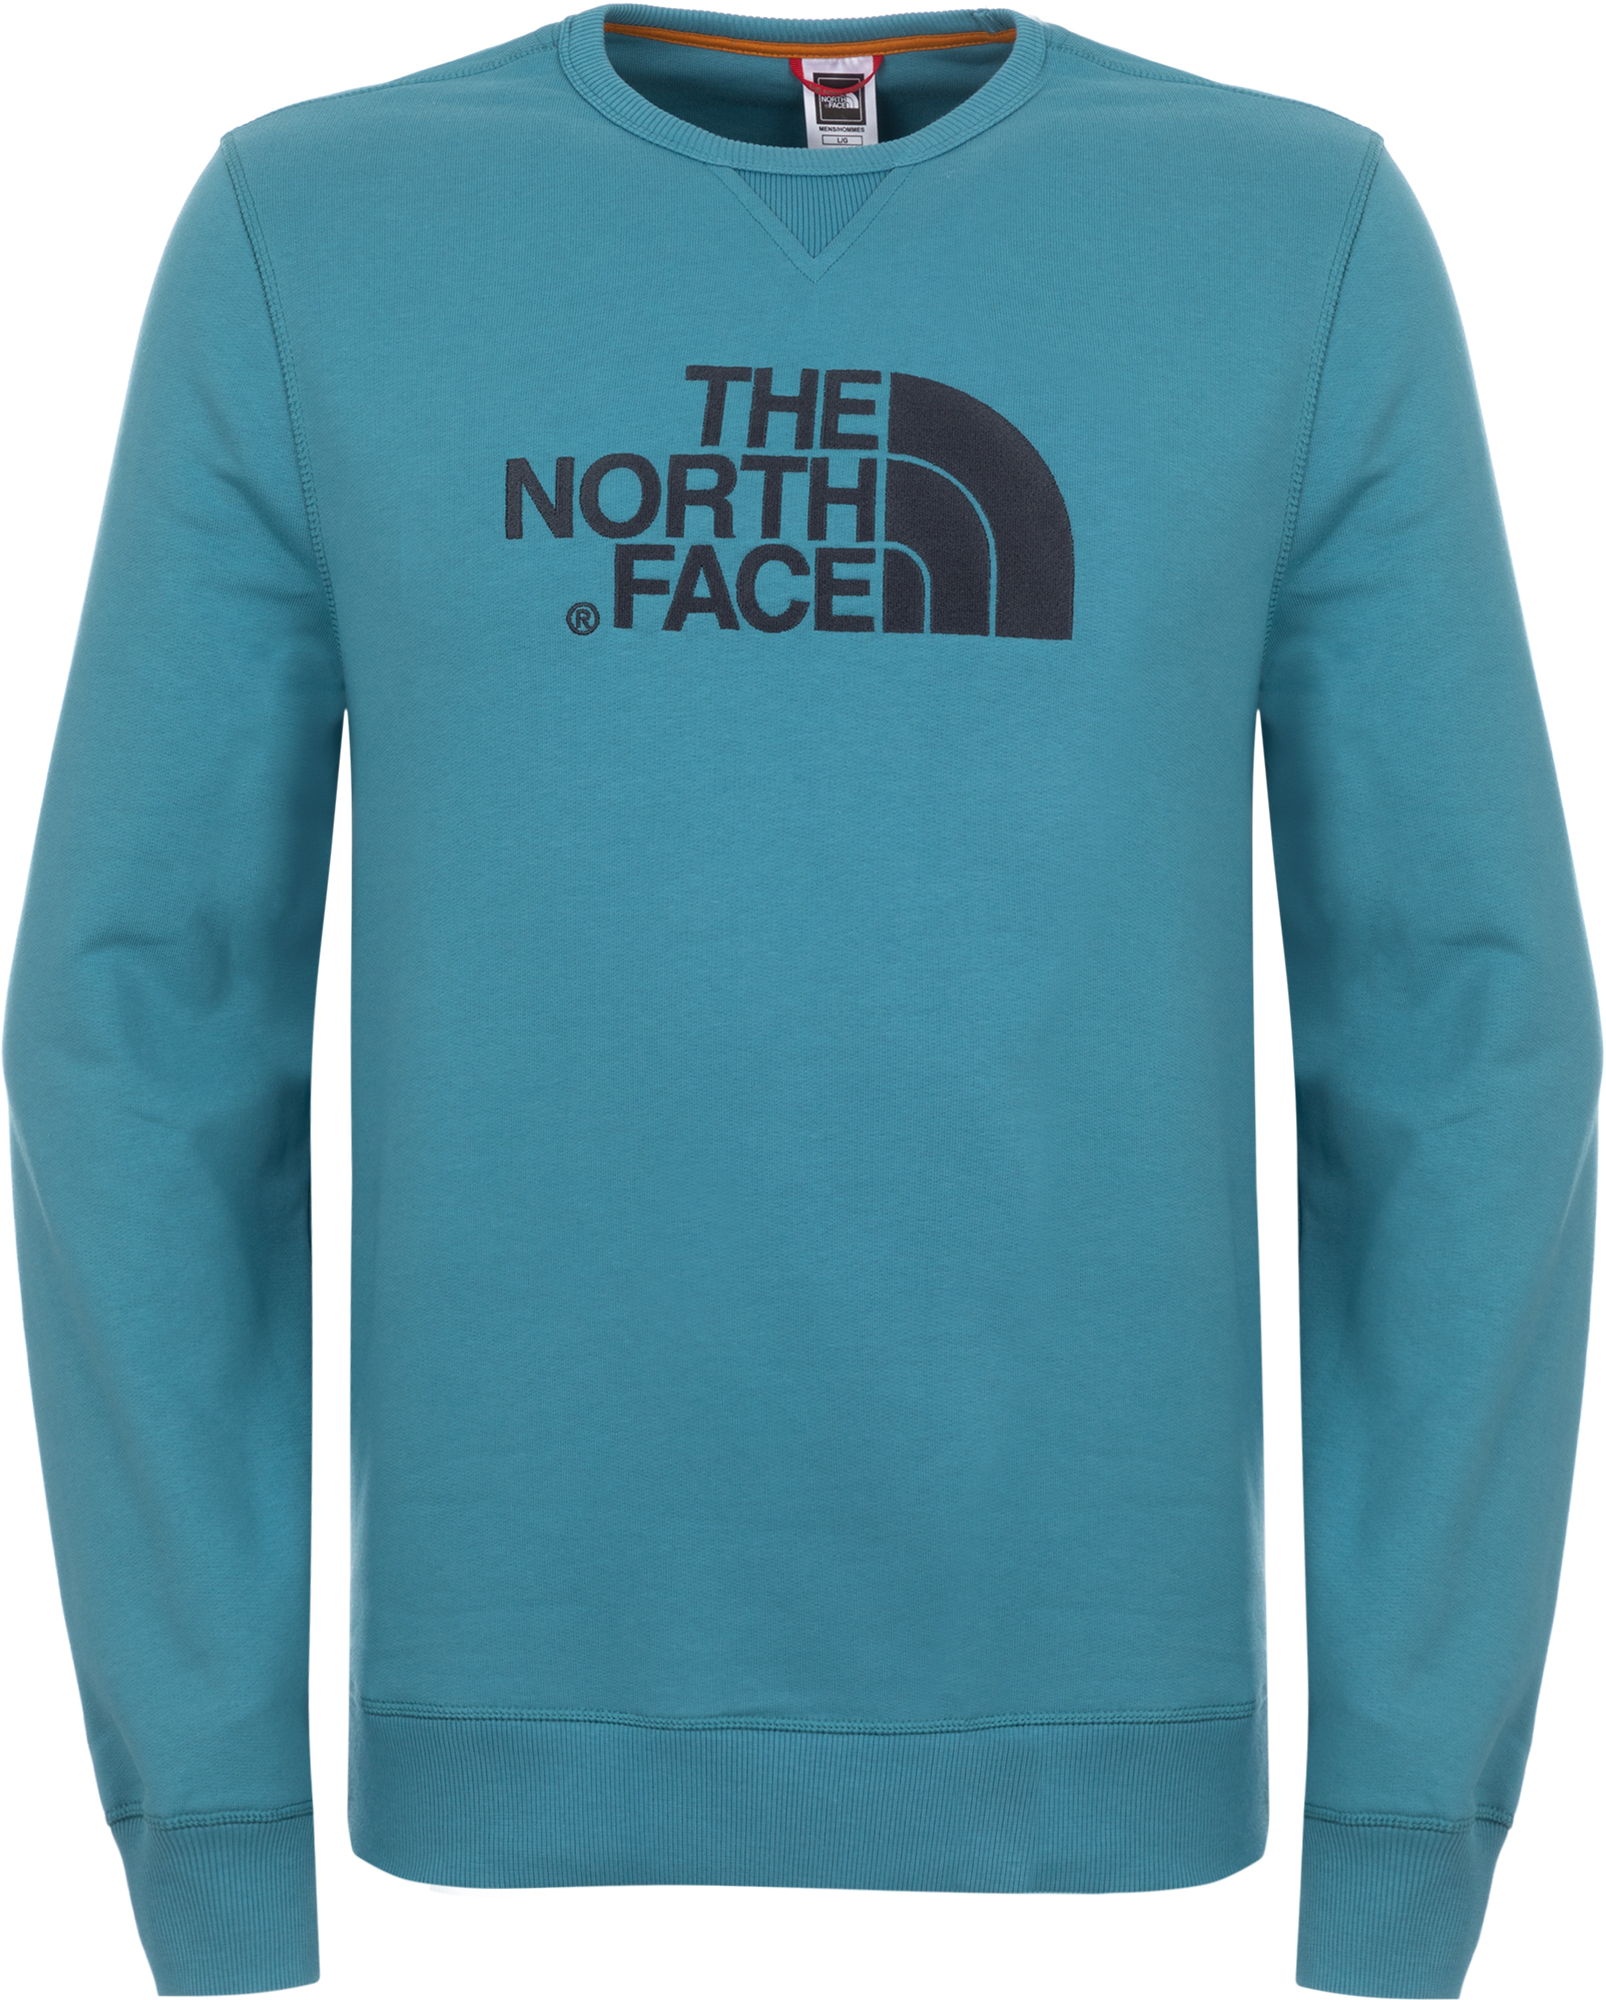 The North Face Джемпер мужской The North Face Drew Peak Crew, размер 50 все цены